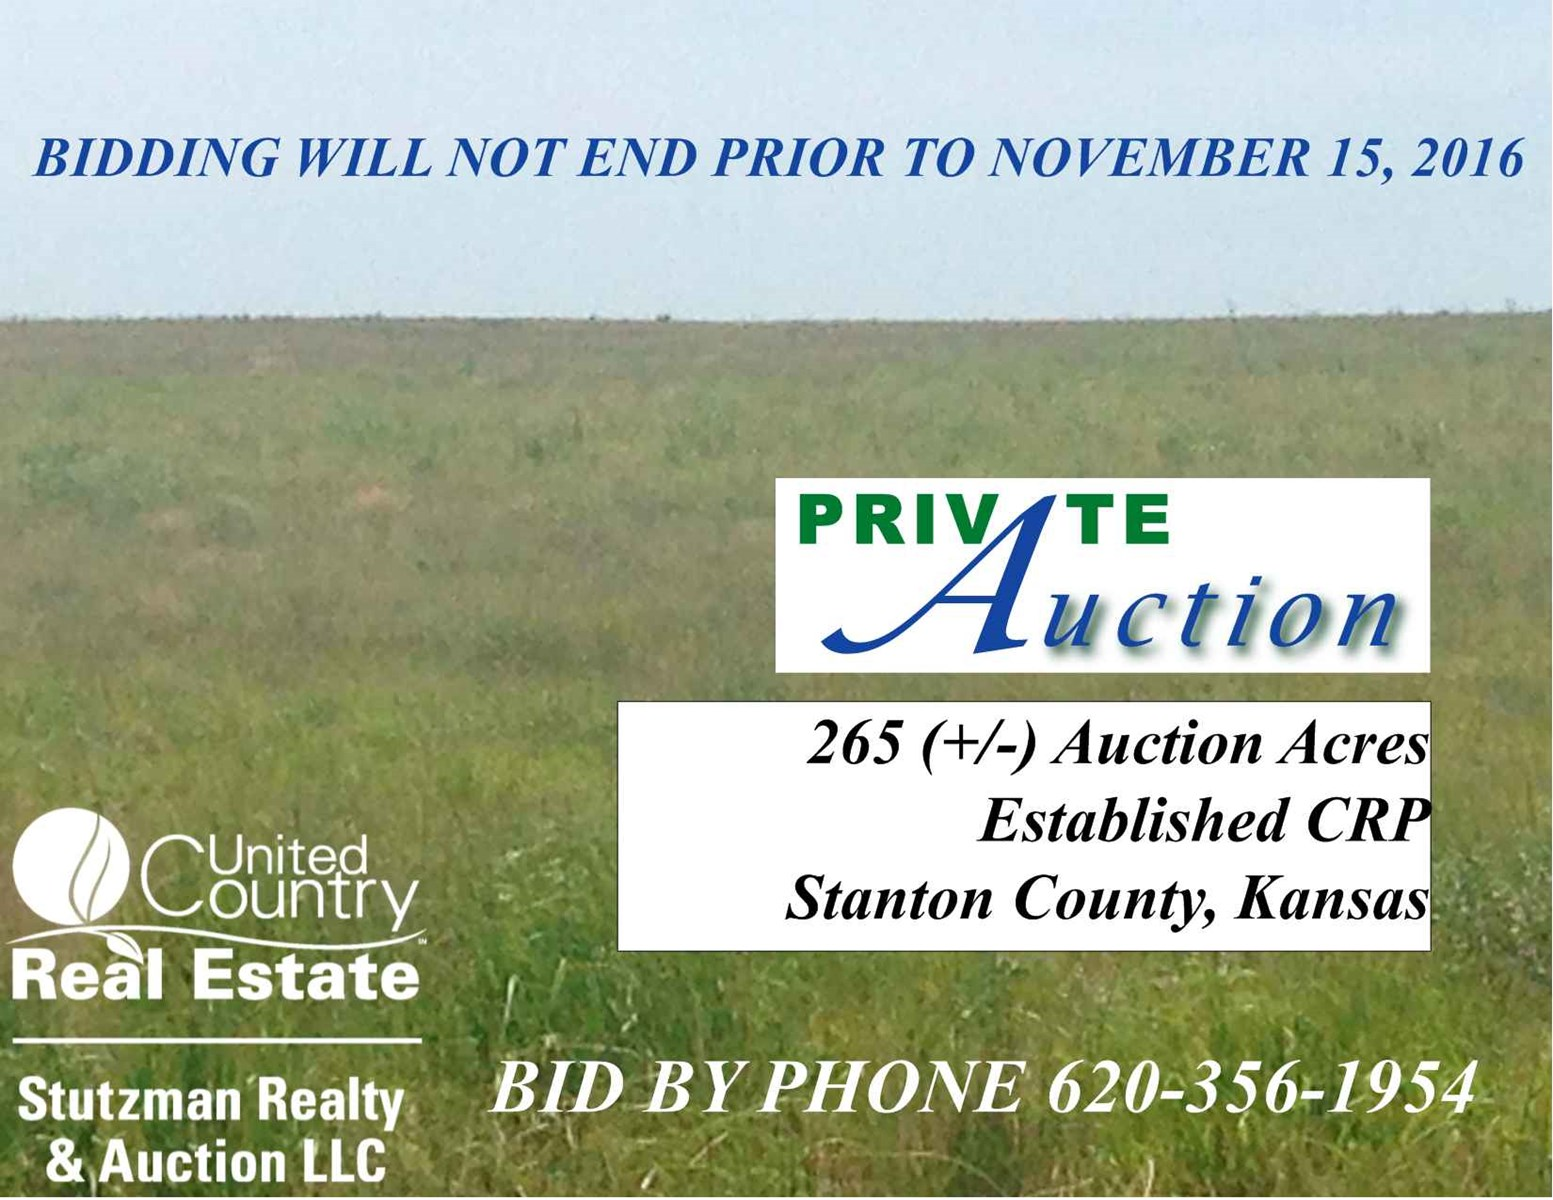 265 +/- Acres of Established CRP in Stanton County, Kansas